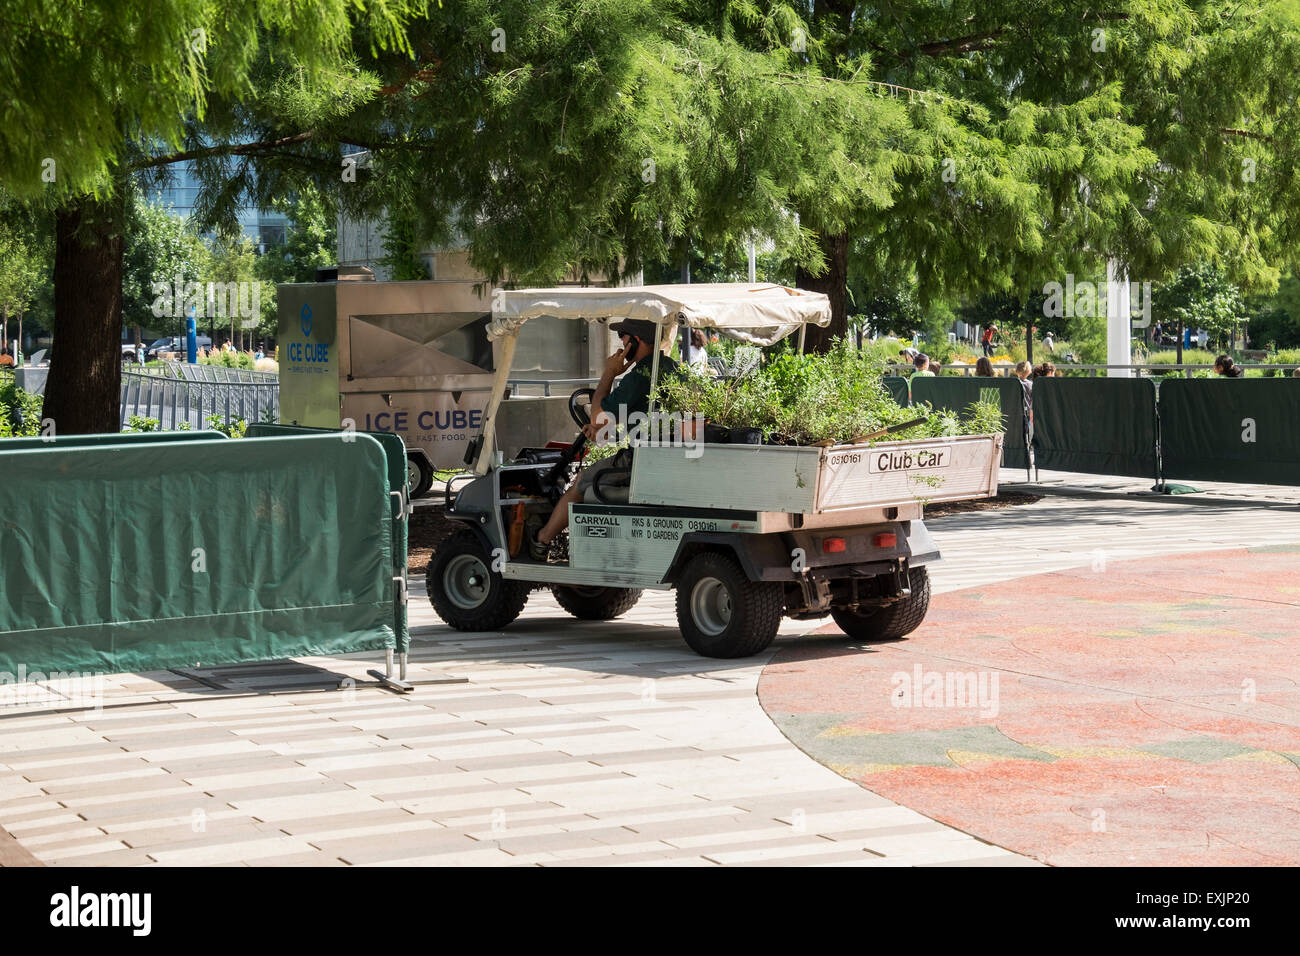 A man drives a small truck called a Club Car filled with shrubbery for planting in the Myriad Botanical Gardens. - Stock Image